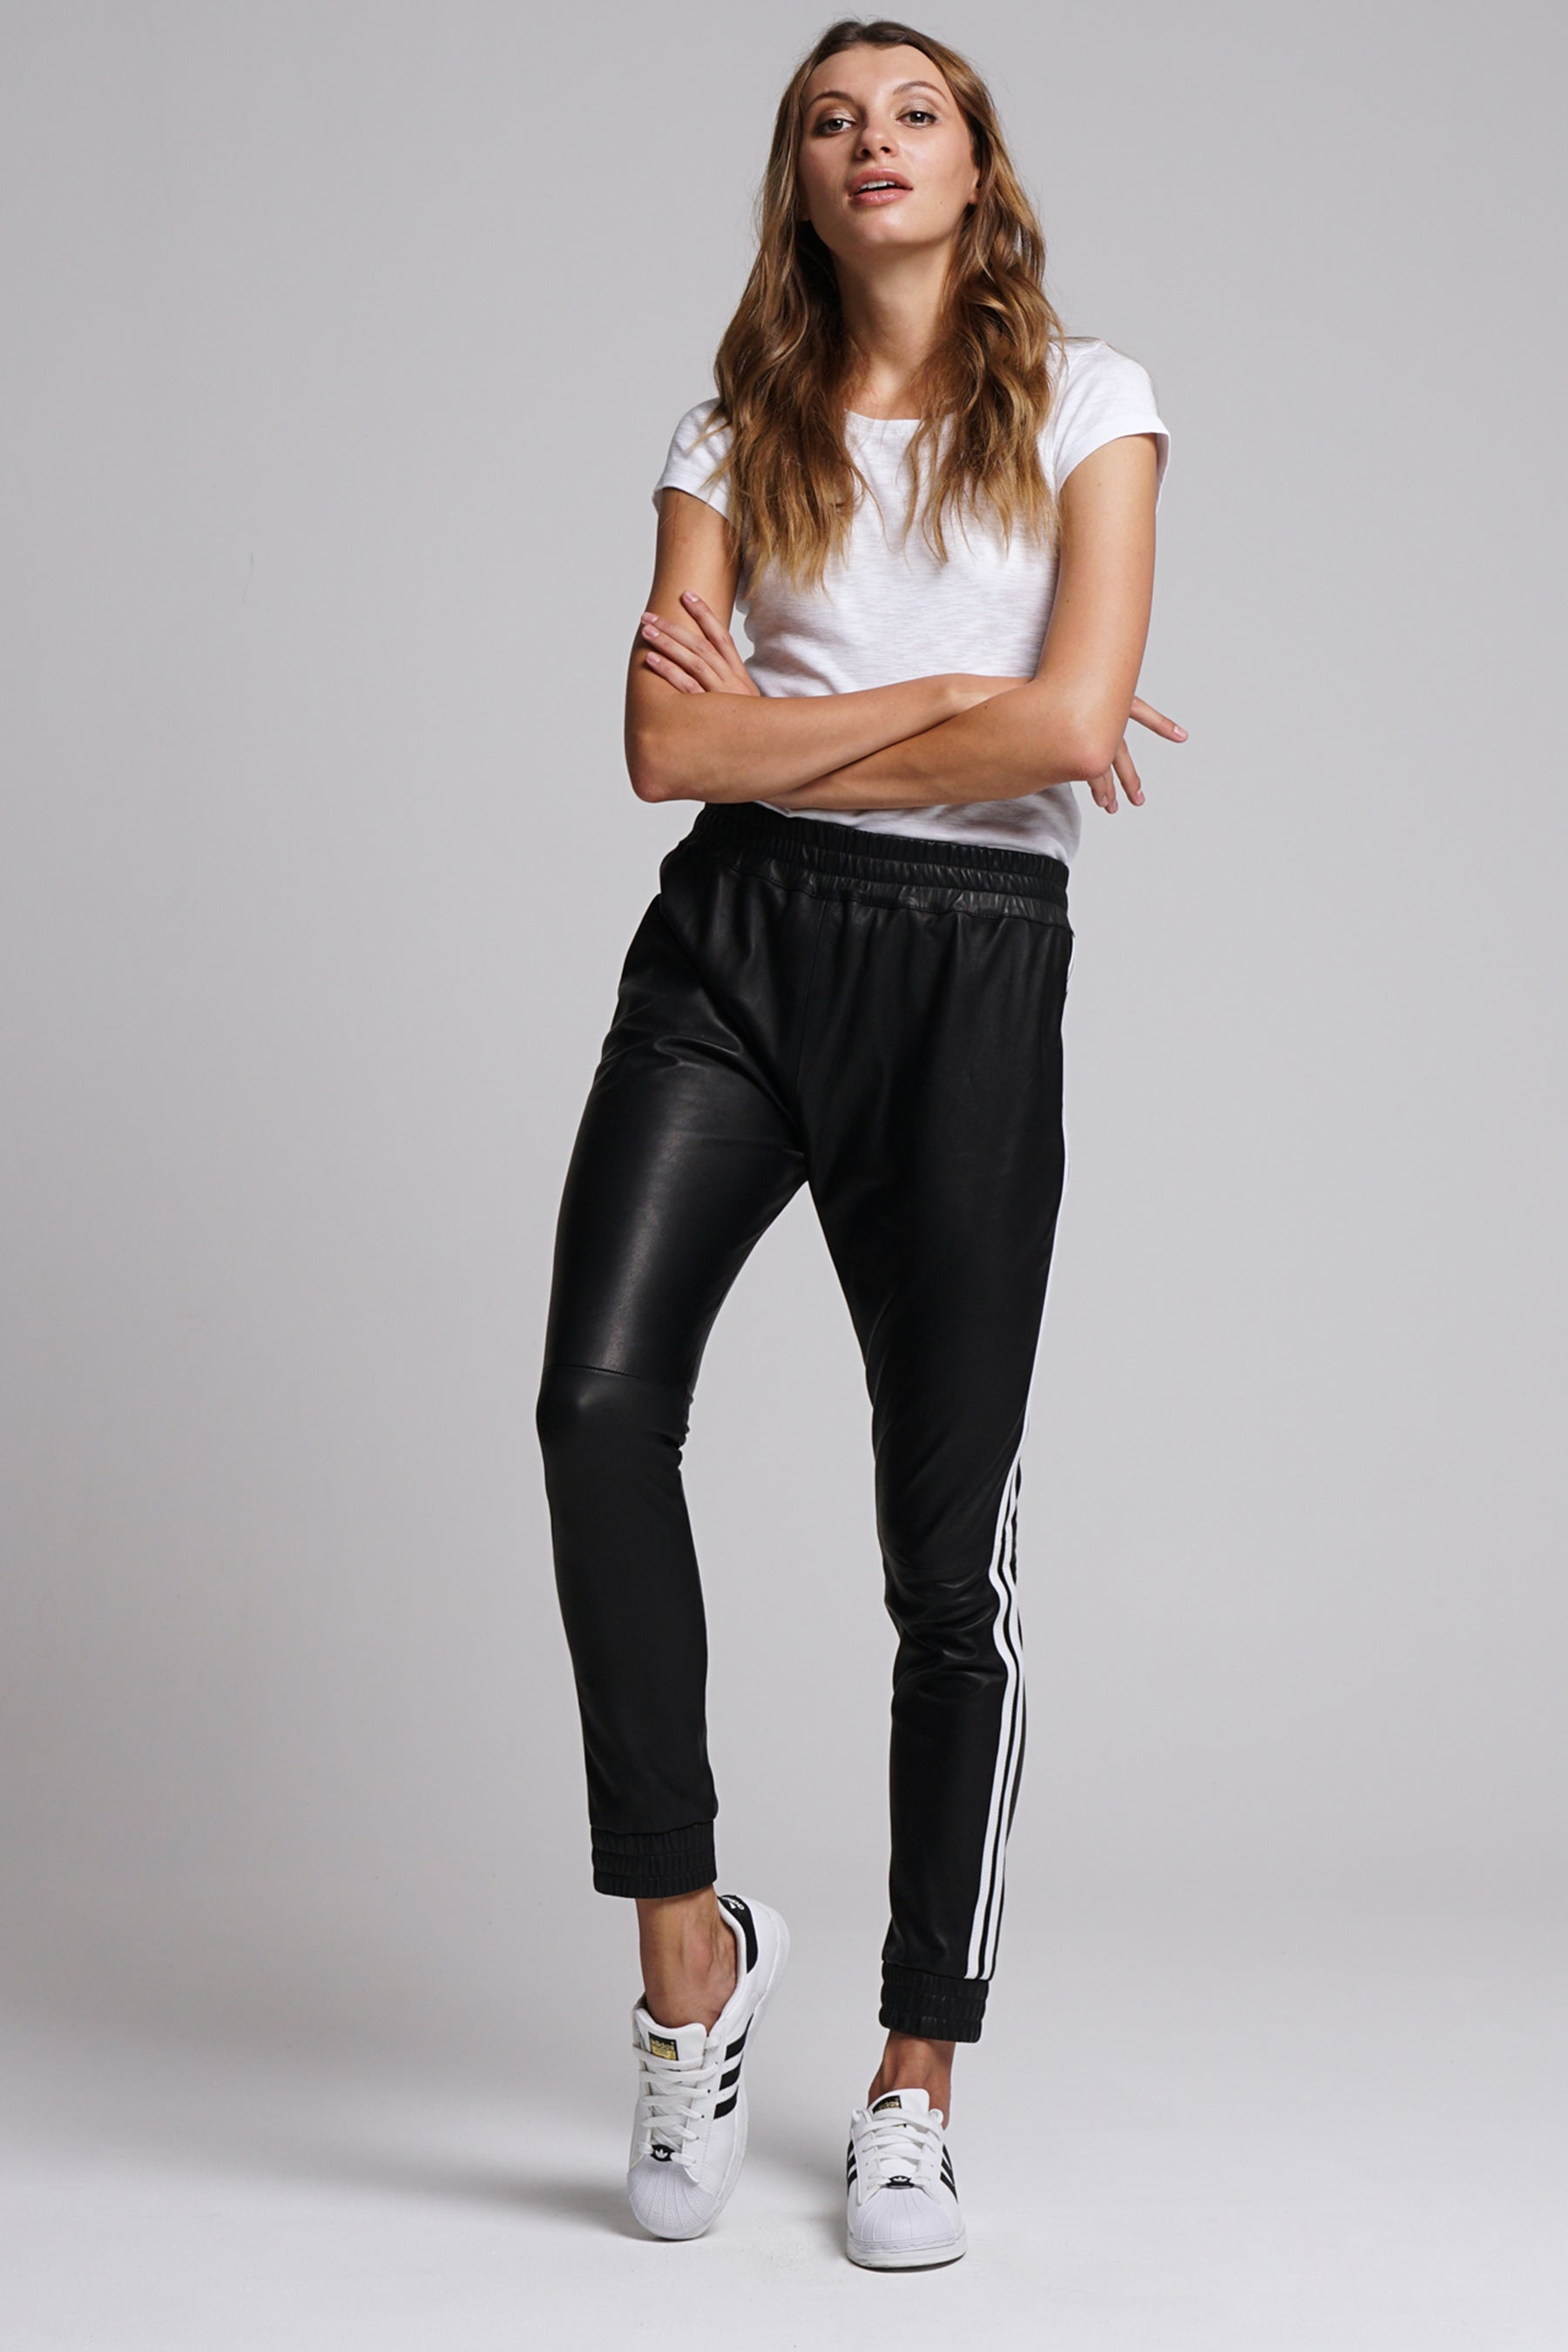 Willow Joggers Black & White